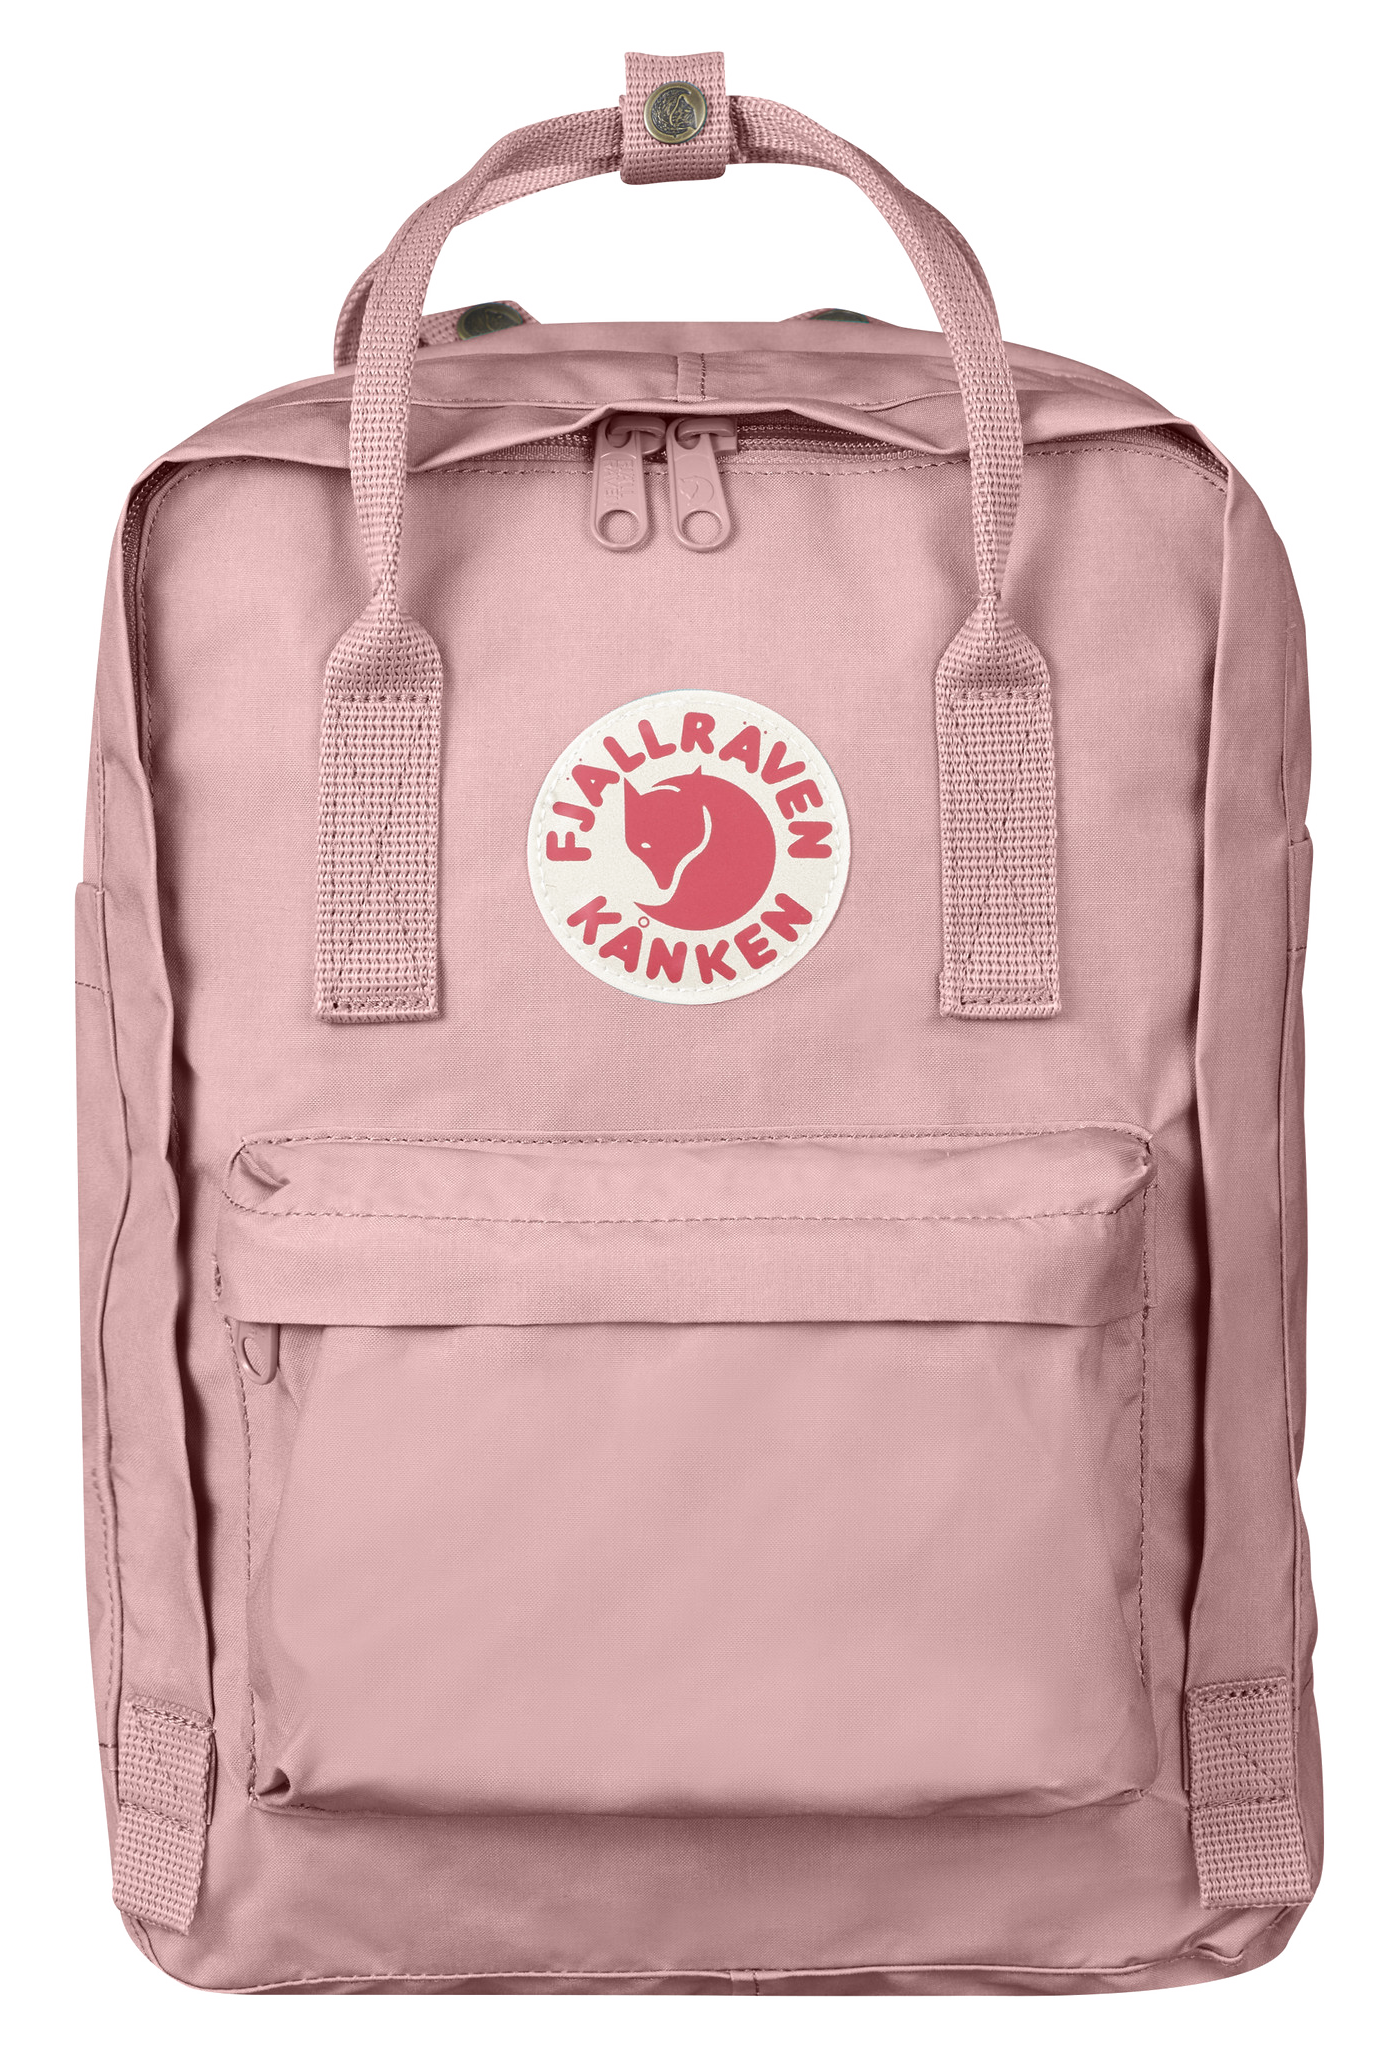 eb953da20 Laptop Backpack Details Originally designed for Swedish school children in  1978, the Kånken has since become our most well-loved and iconic backpack  for ...